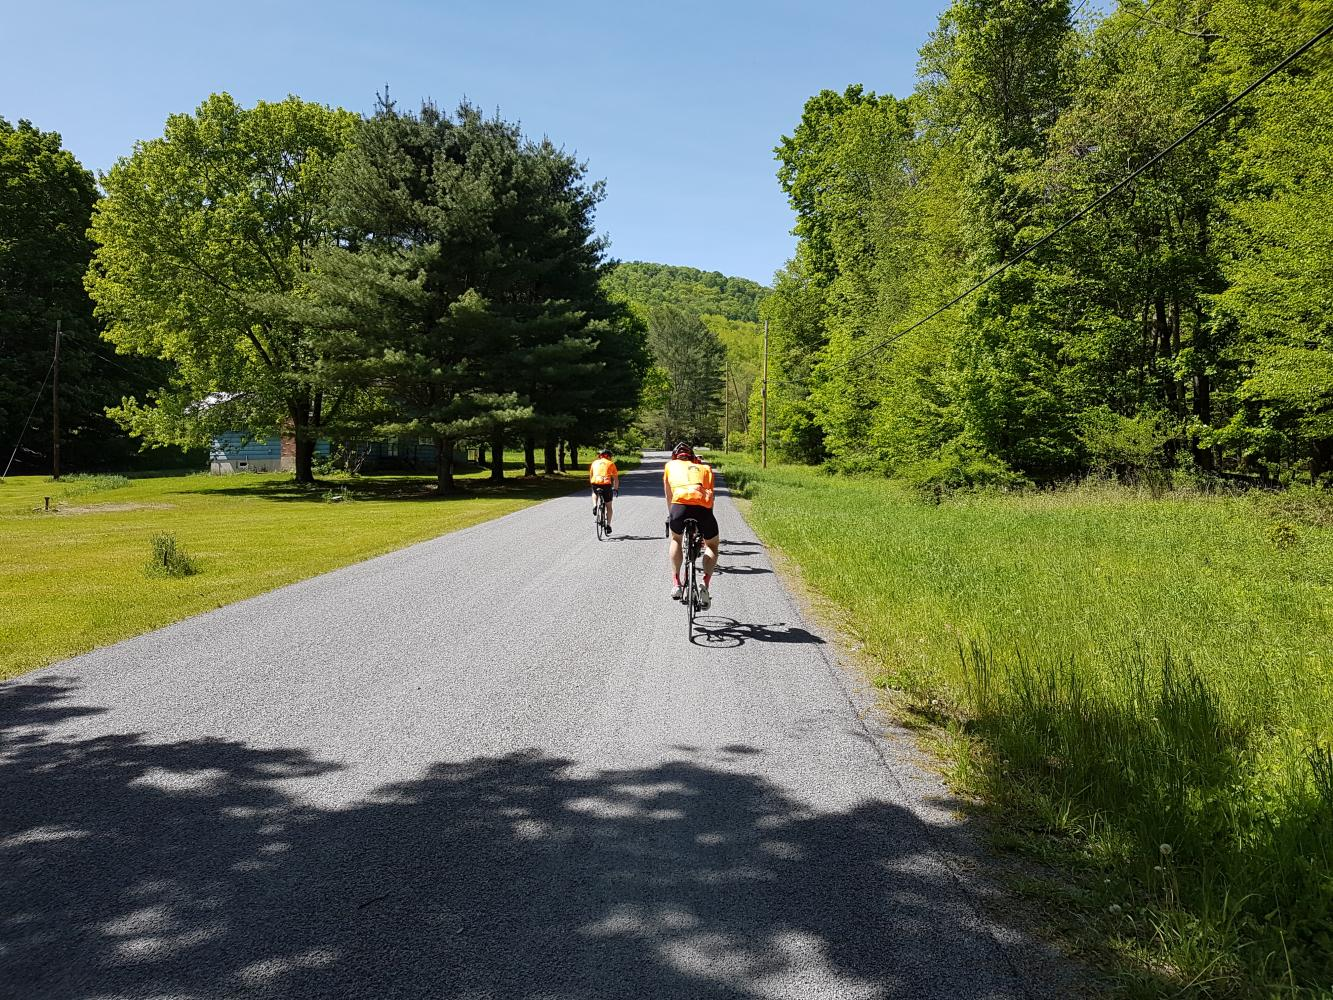 Sugarloaf Road Bike Climb - PJAMM Cycling